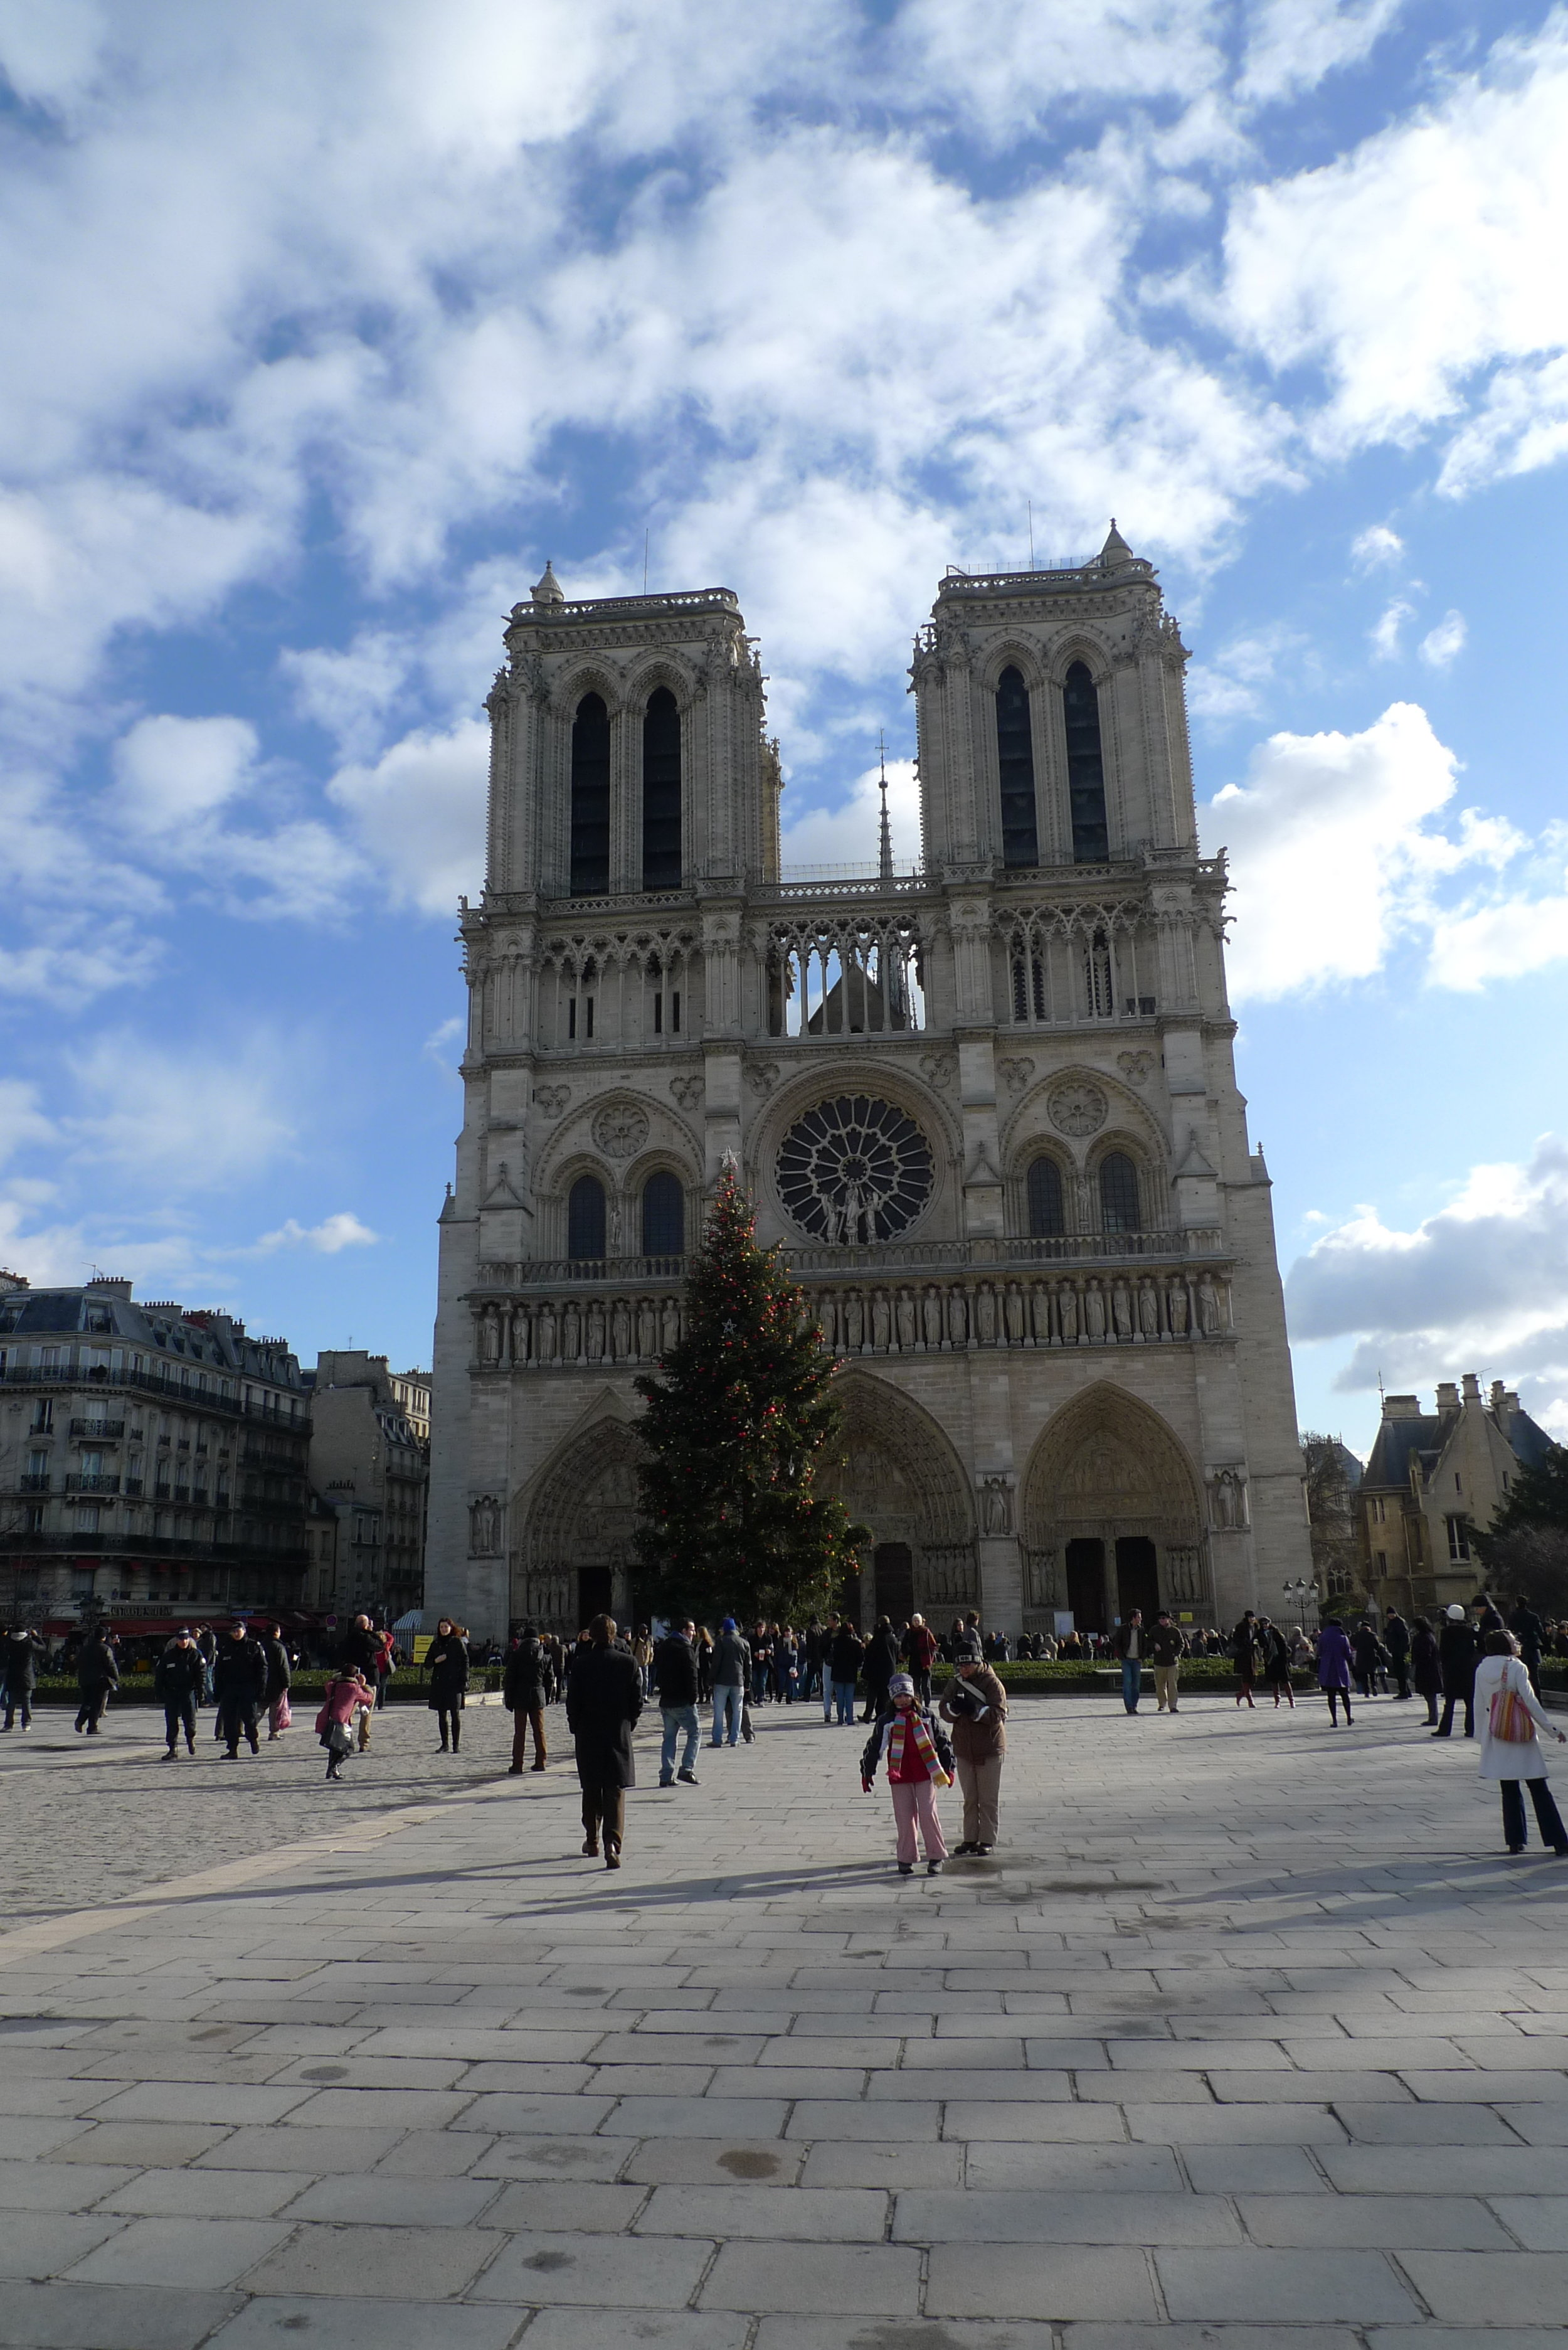 NOTRE DAME IN 2010